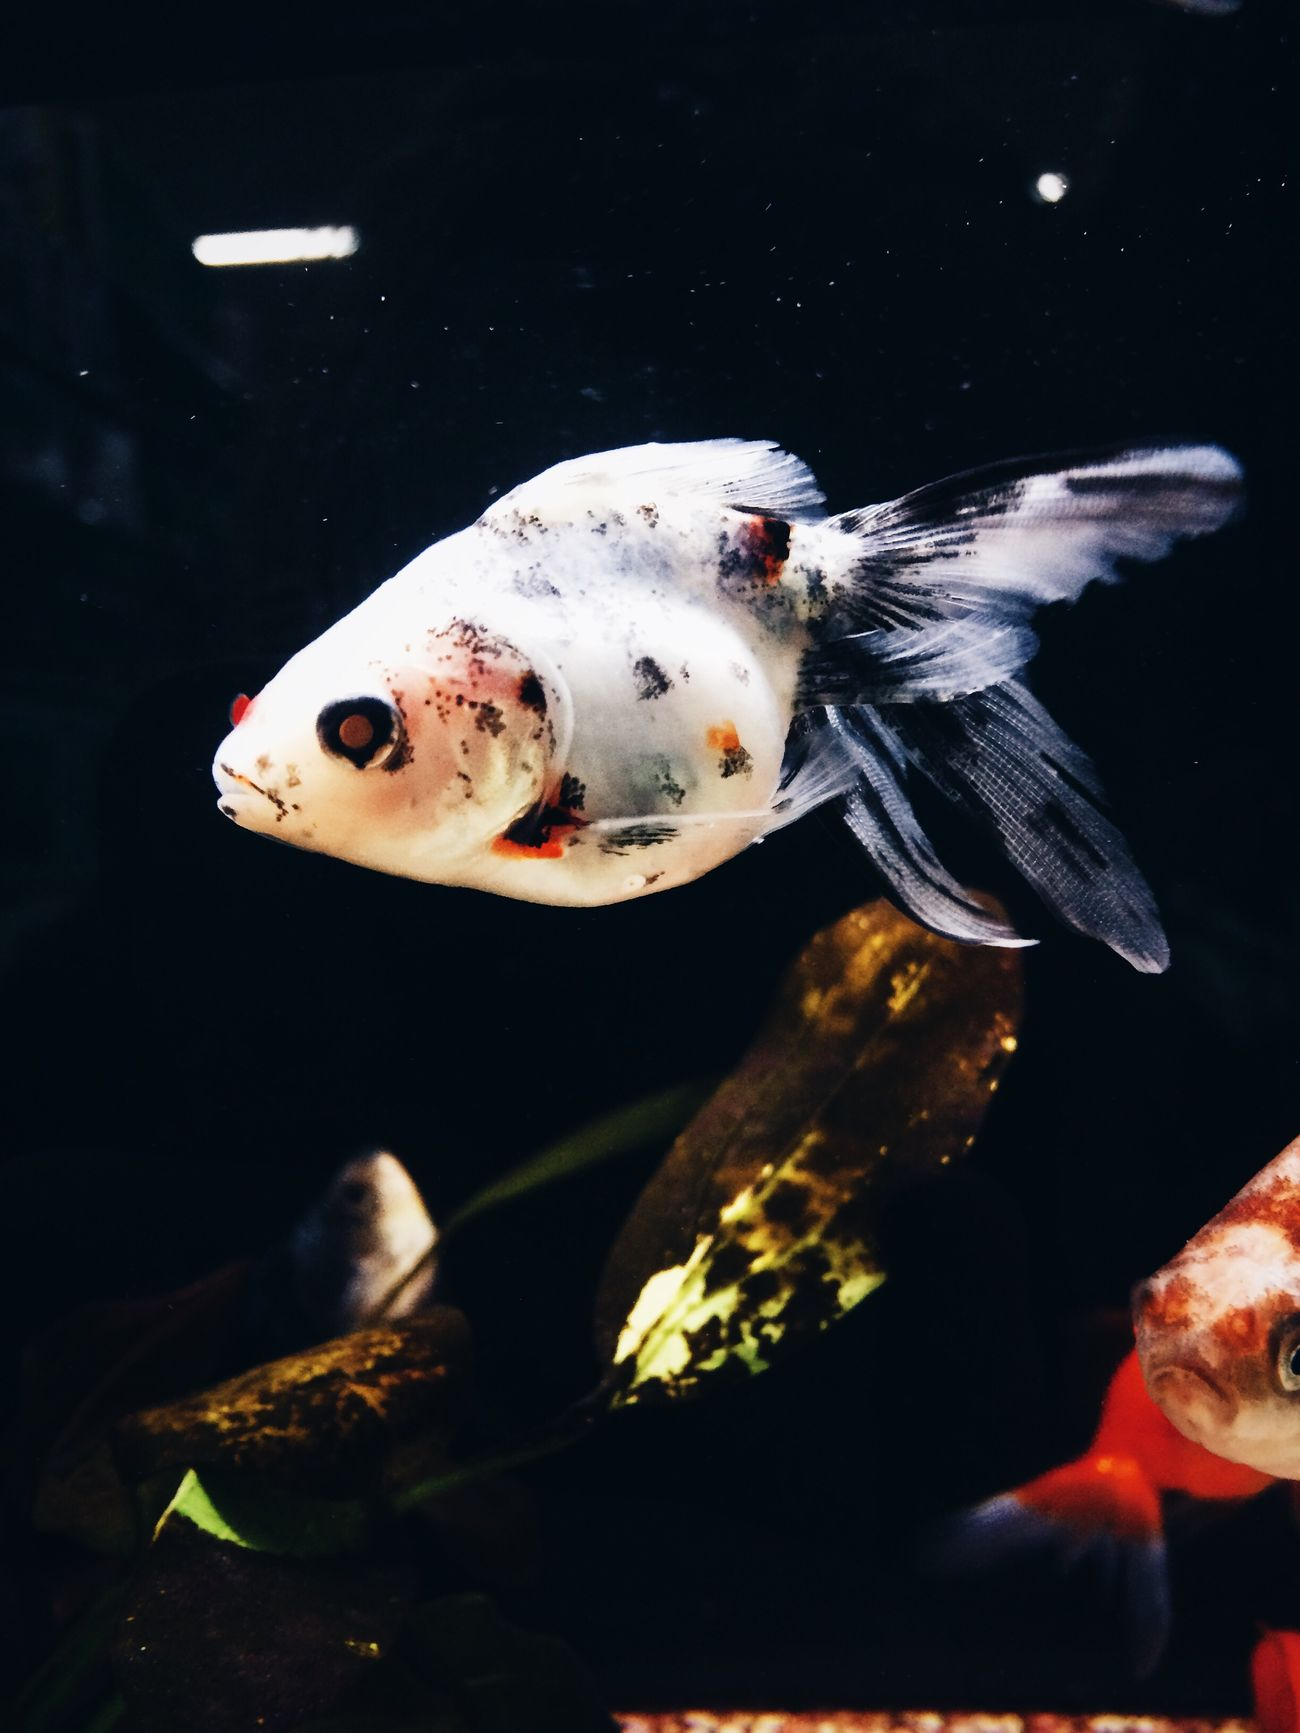 Animal Themes Swimming Fish Water Underwater Animals In Captivity Aquarium Close-up Walmart